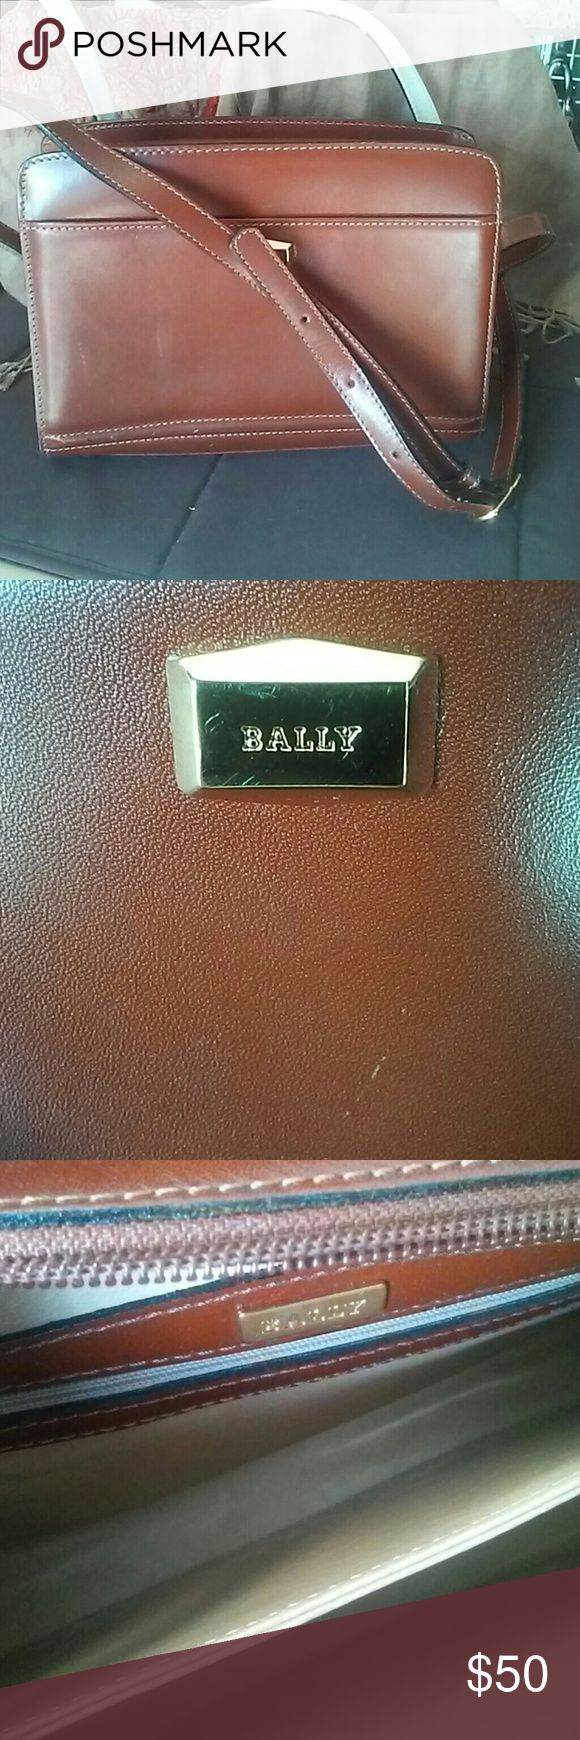 Bally Crossover Bag Good condition, clean inside and out, very nice leather Bally Bags